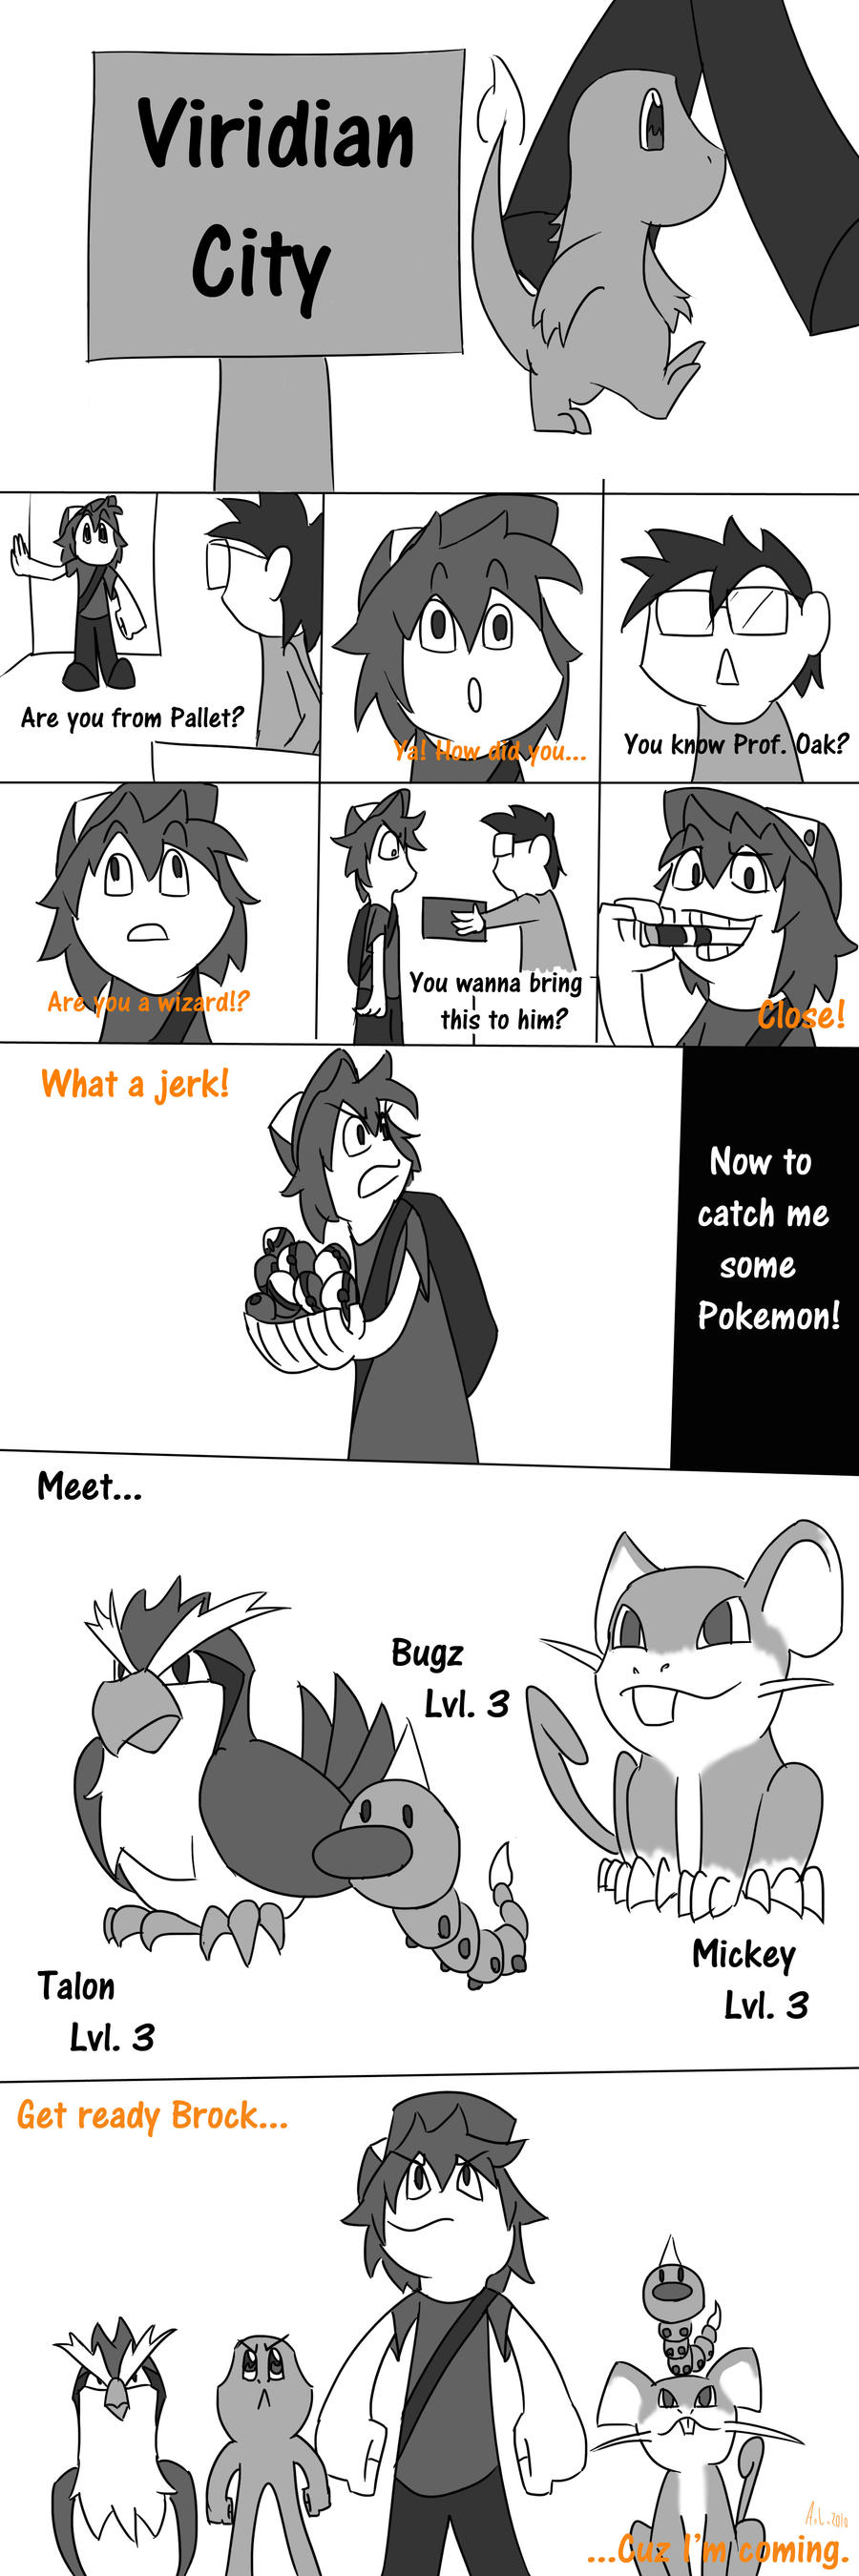 Char's nuzlocke challenge! Char__s_nuzlocke_challenge_pg_4_by_charmaster-d33eh50